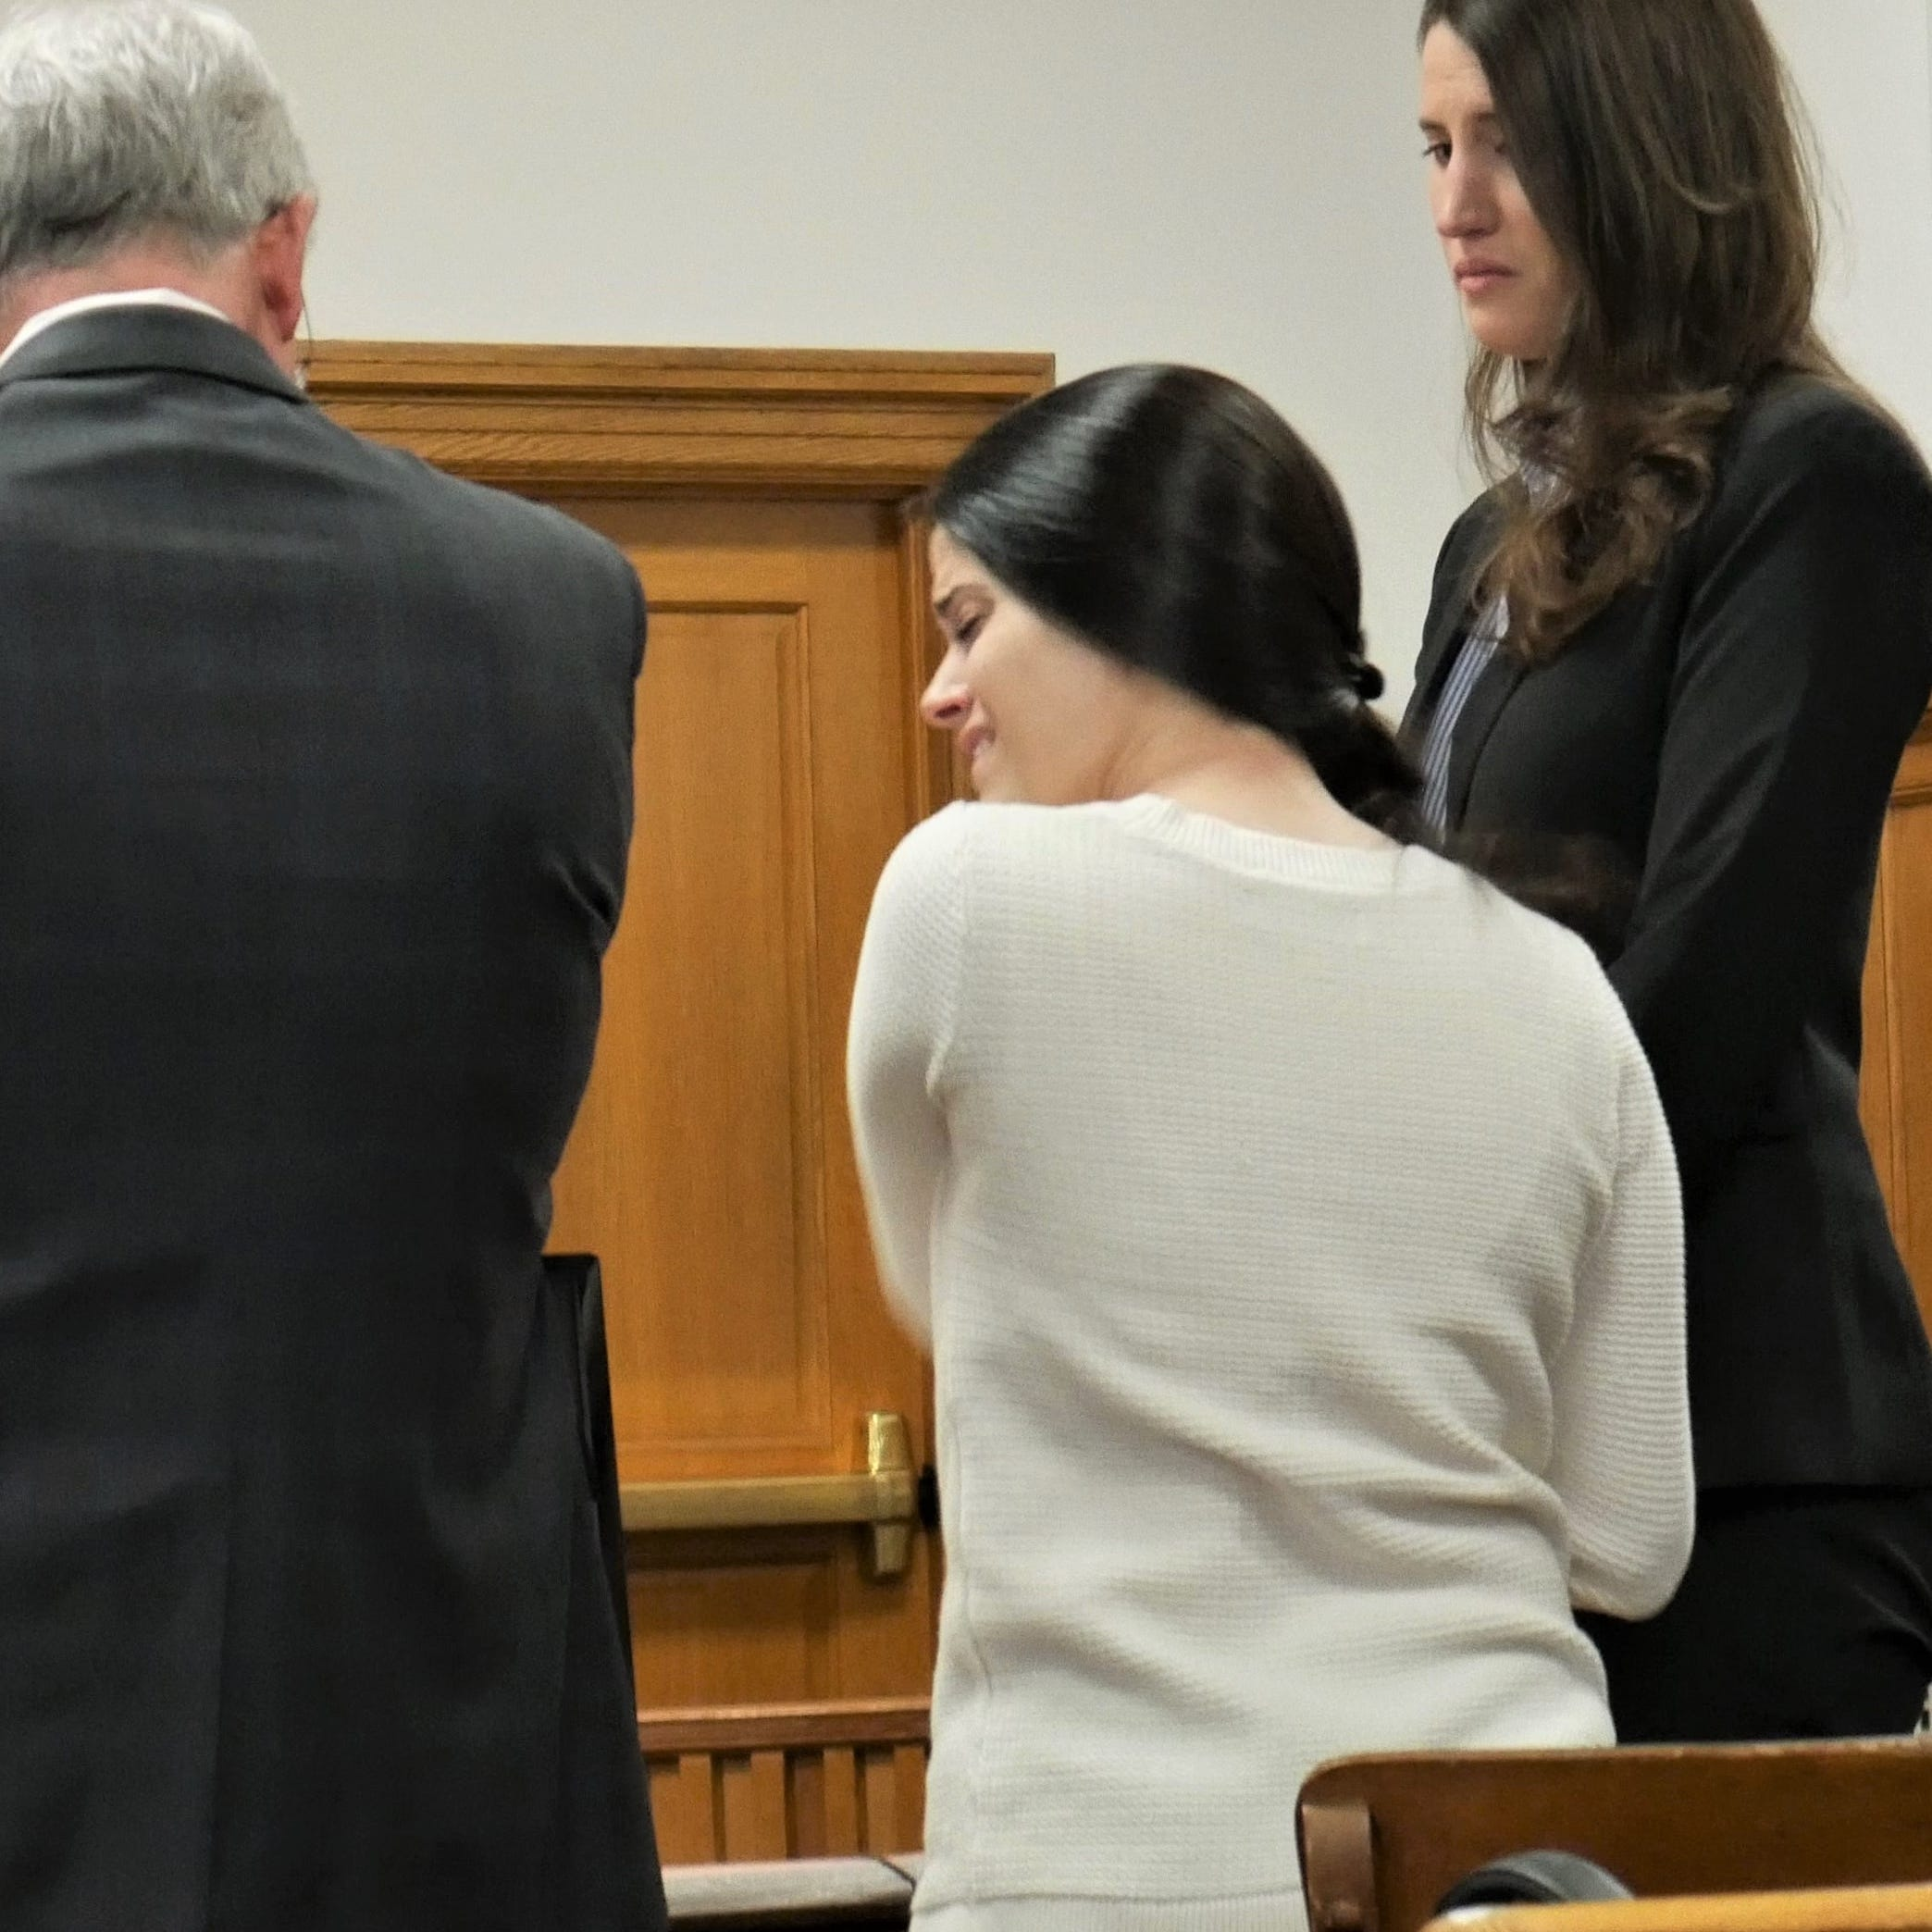 Nicole Addimando found guilty of murder in boyfriend's shooting death